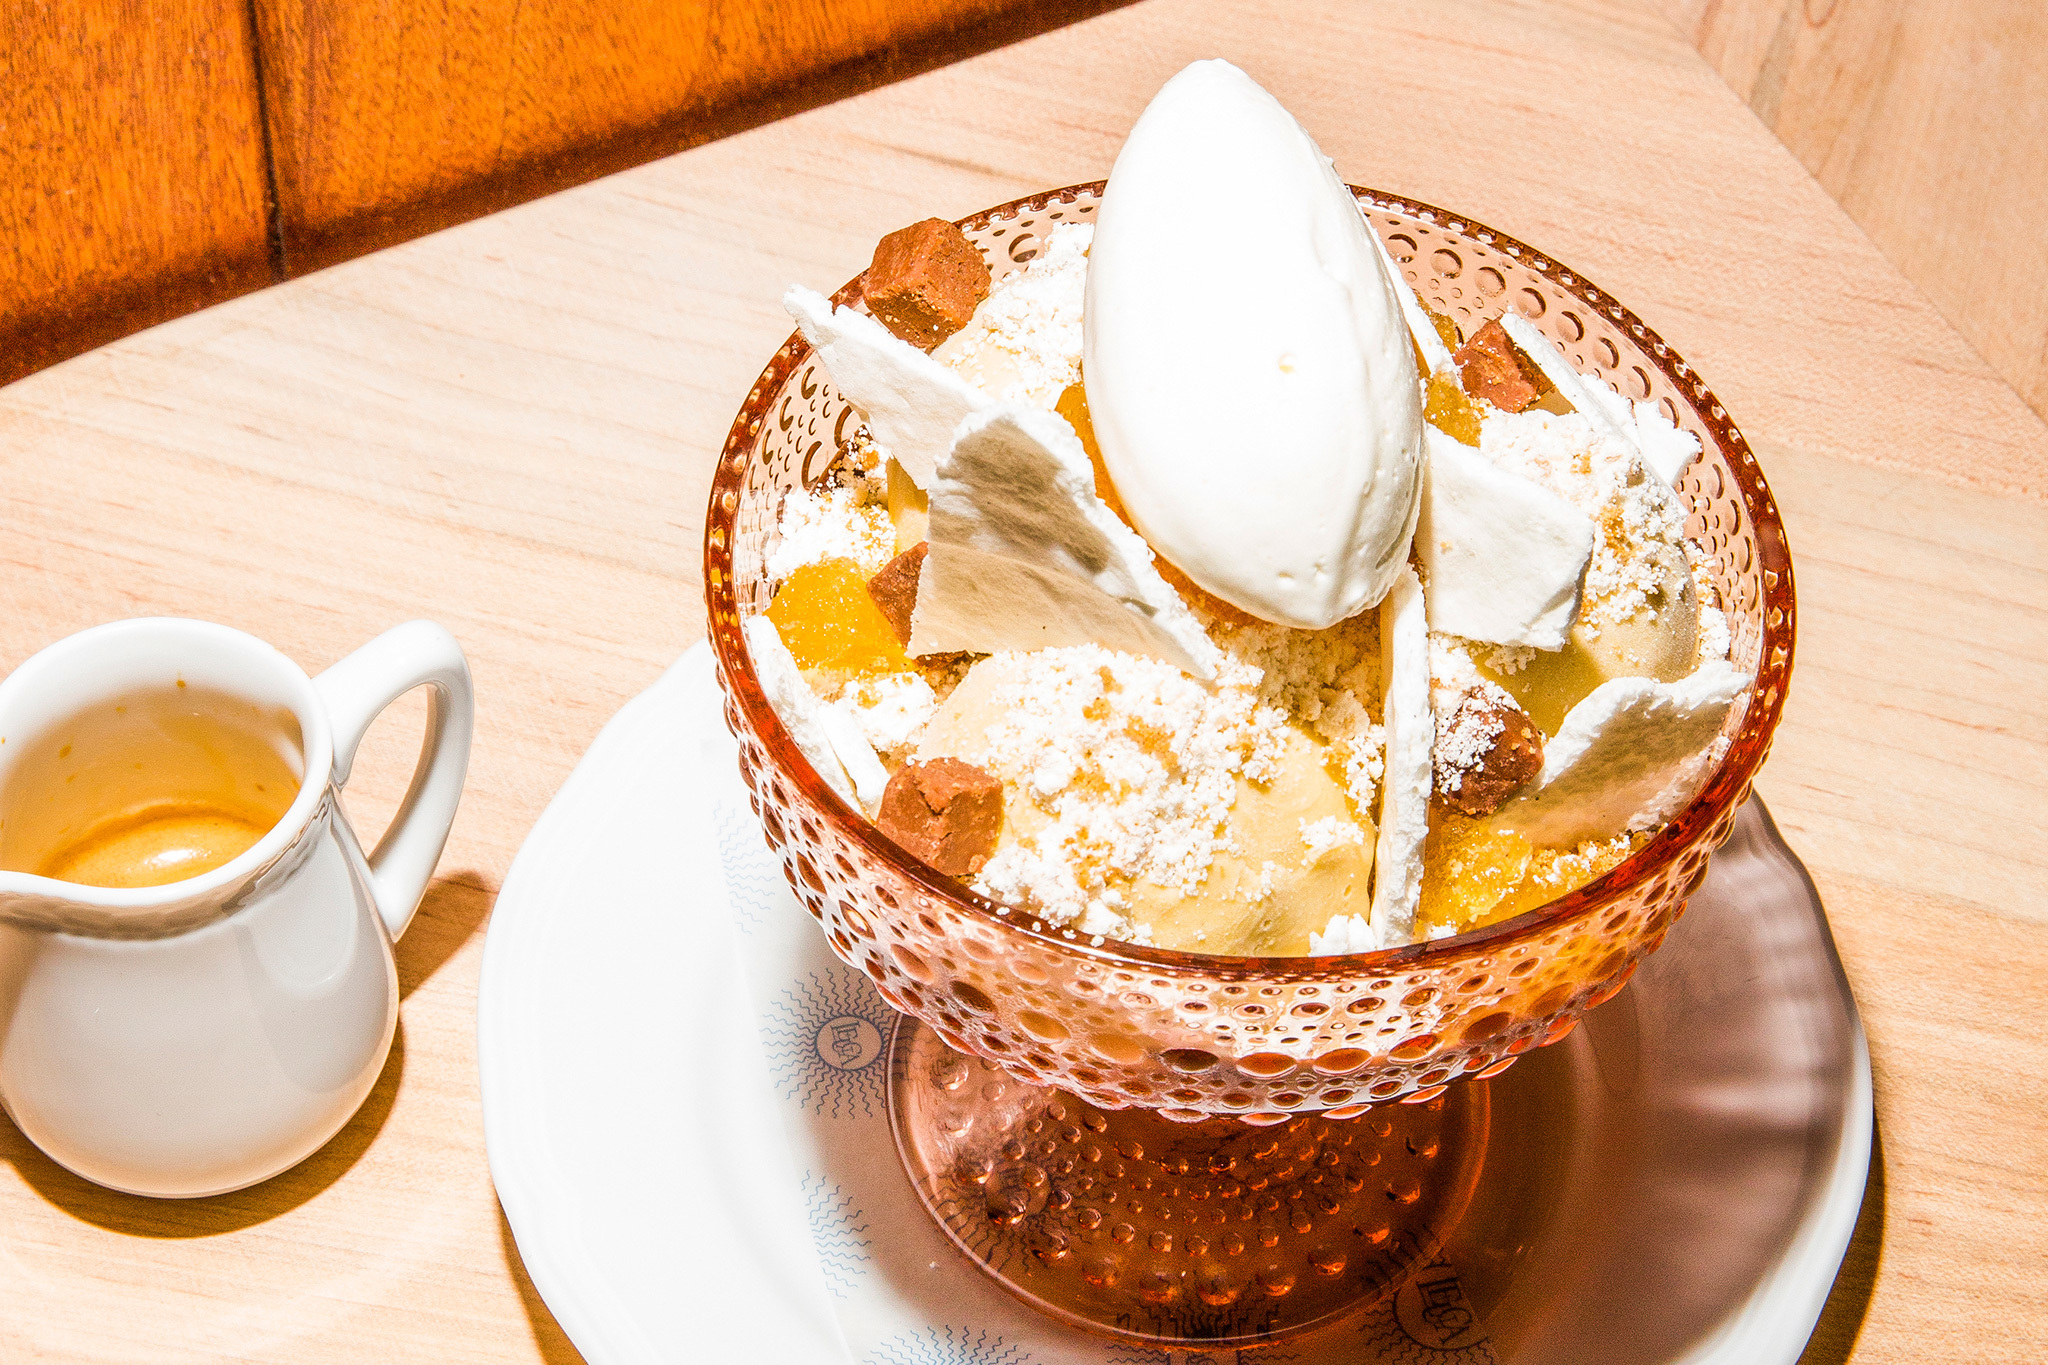 Cap off warm spring days with NYC's best new sundaes